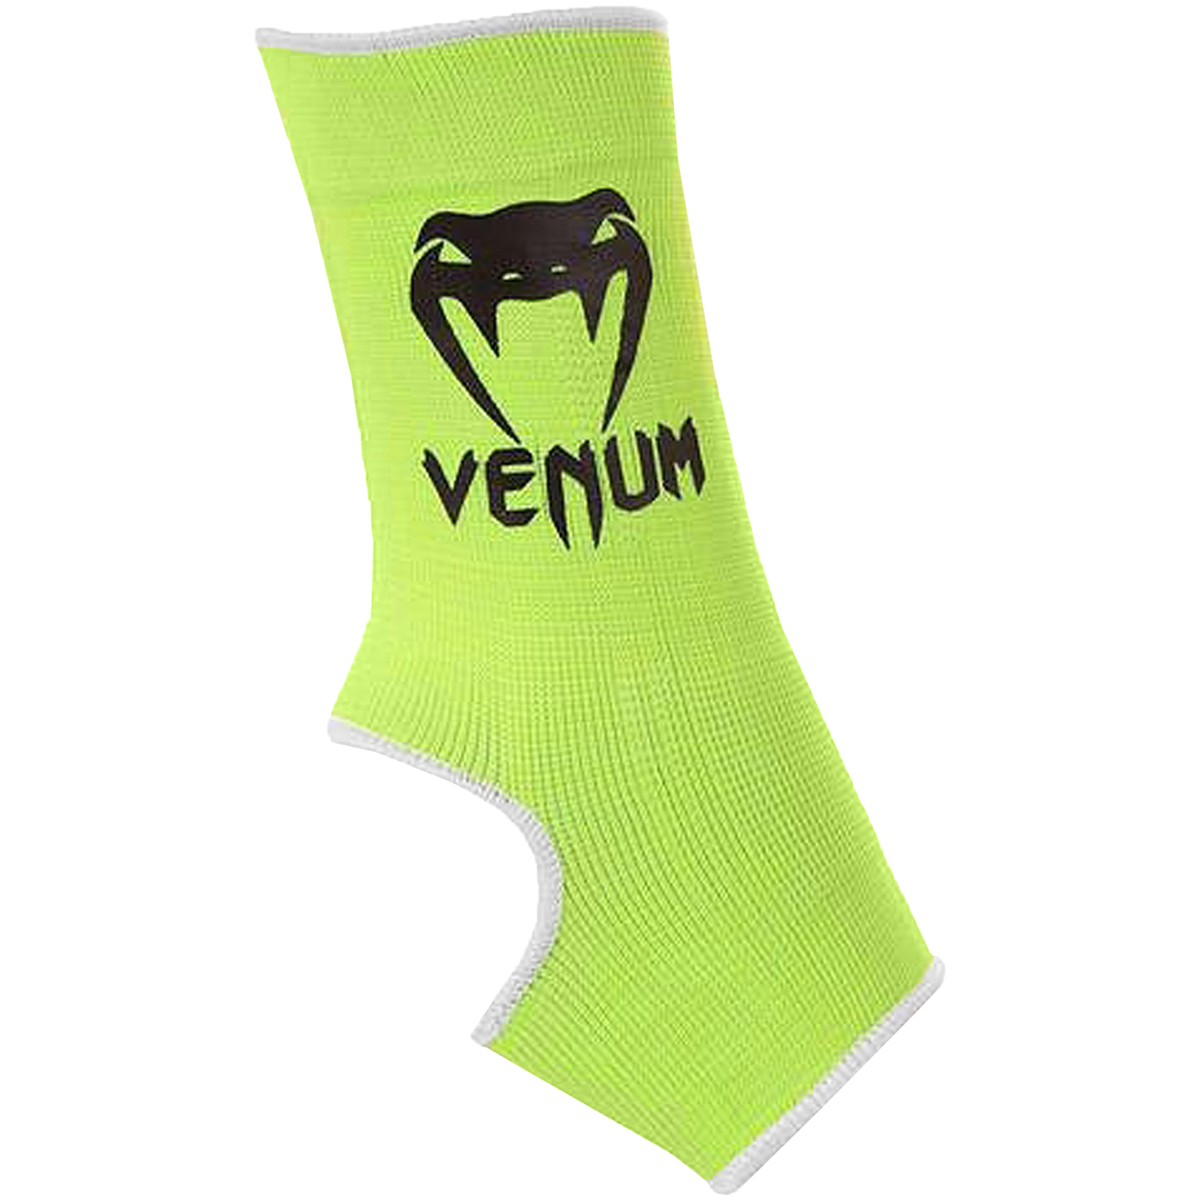 thumbnail 28 - Venum Kontact Slip-On MMA Pro Ankle Support Guards